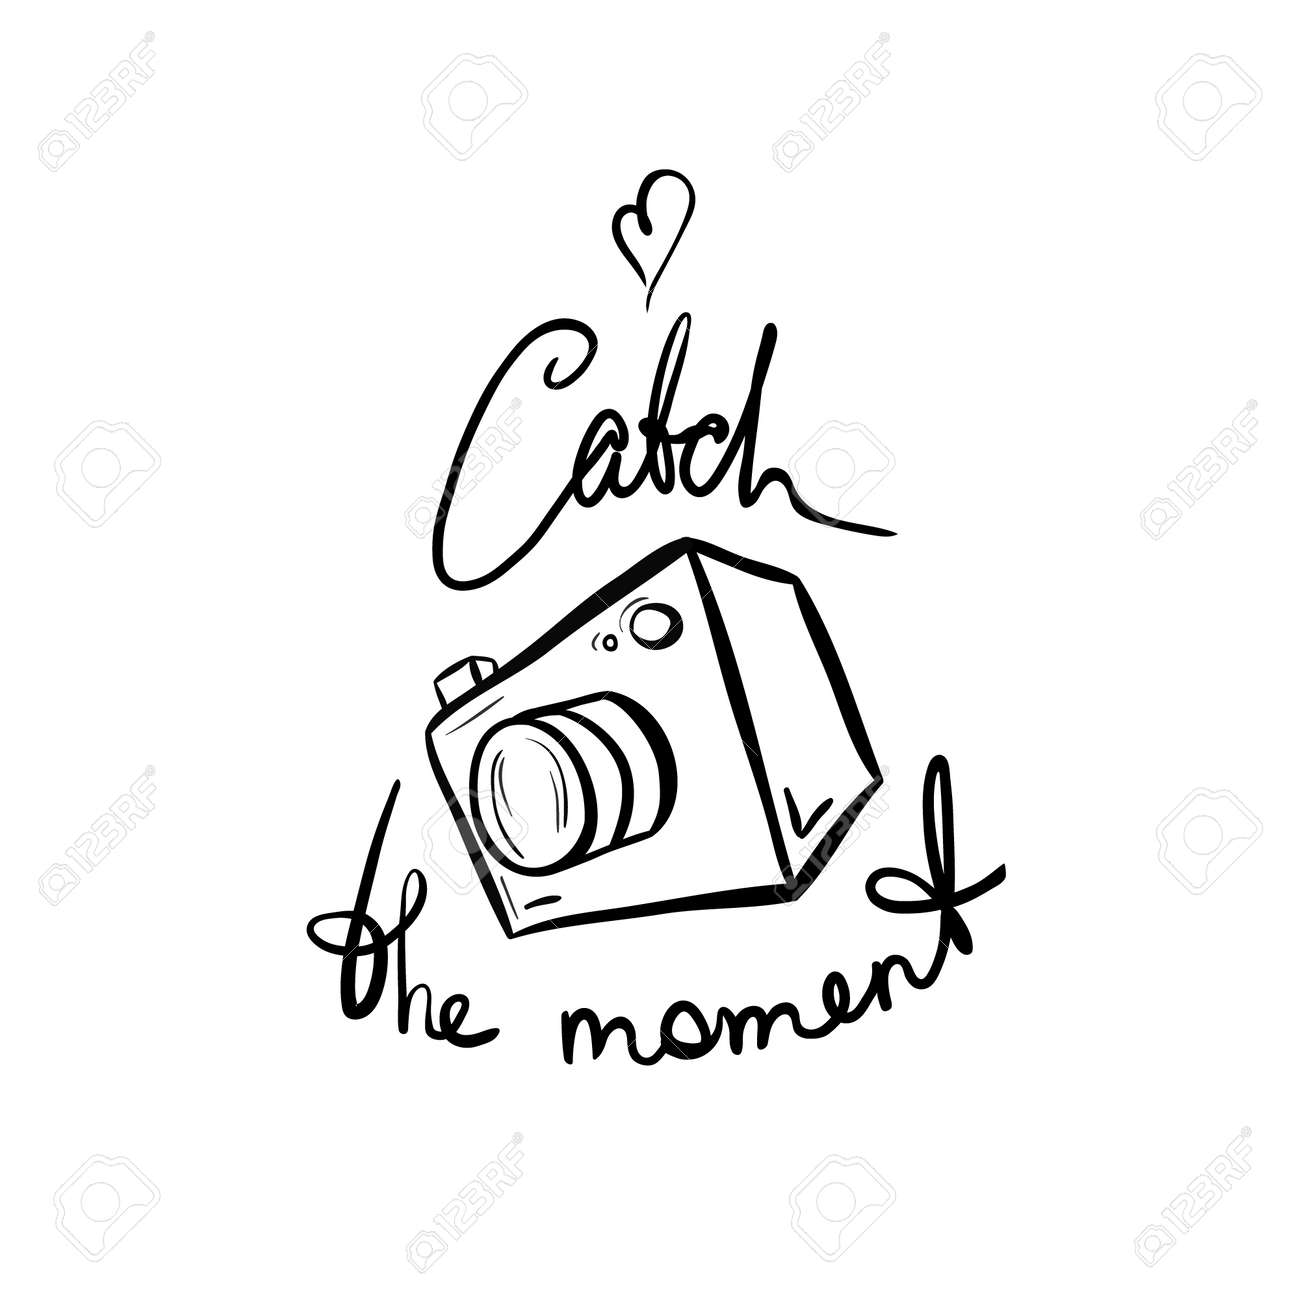 Illustration Of A Camera Catch The Moment Take Photo Picture